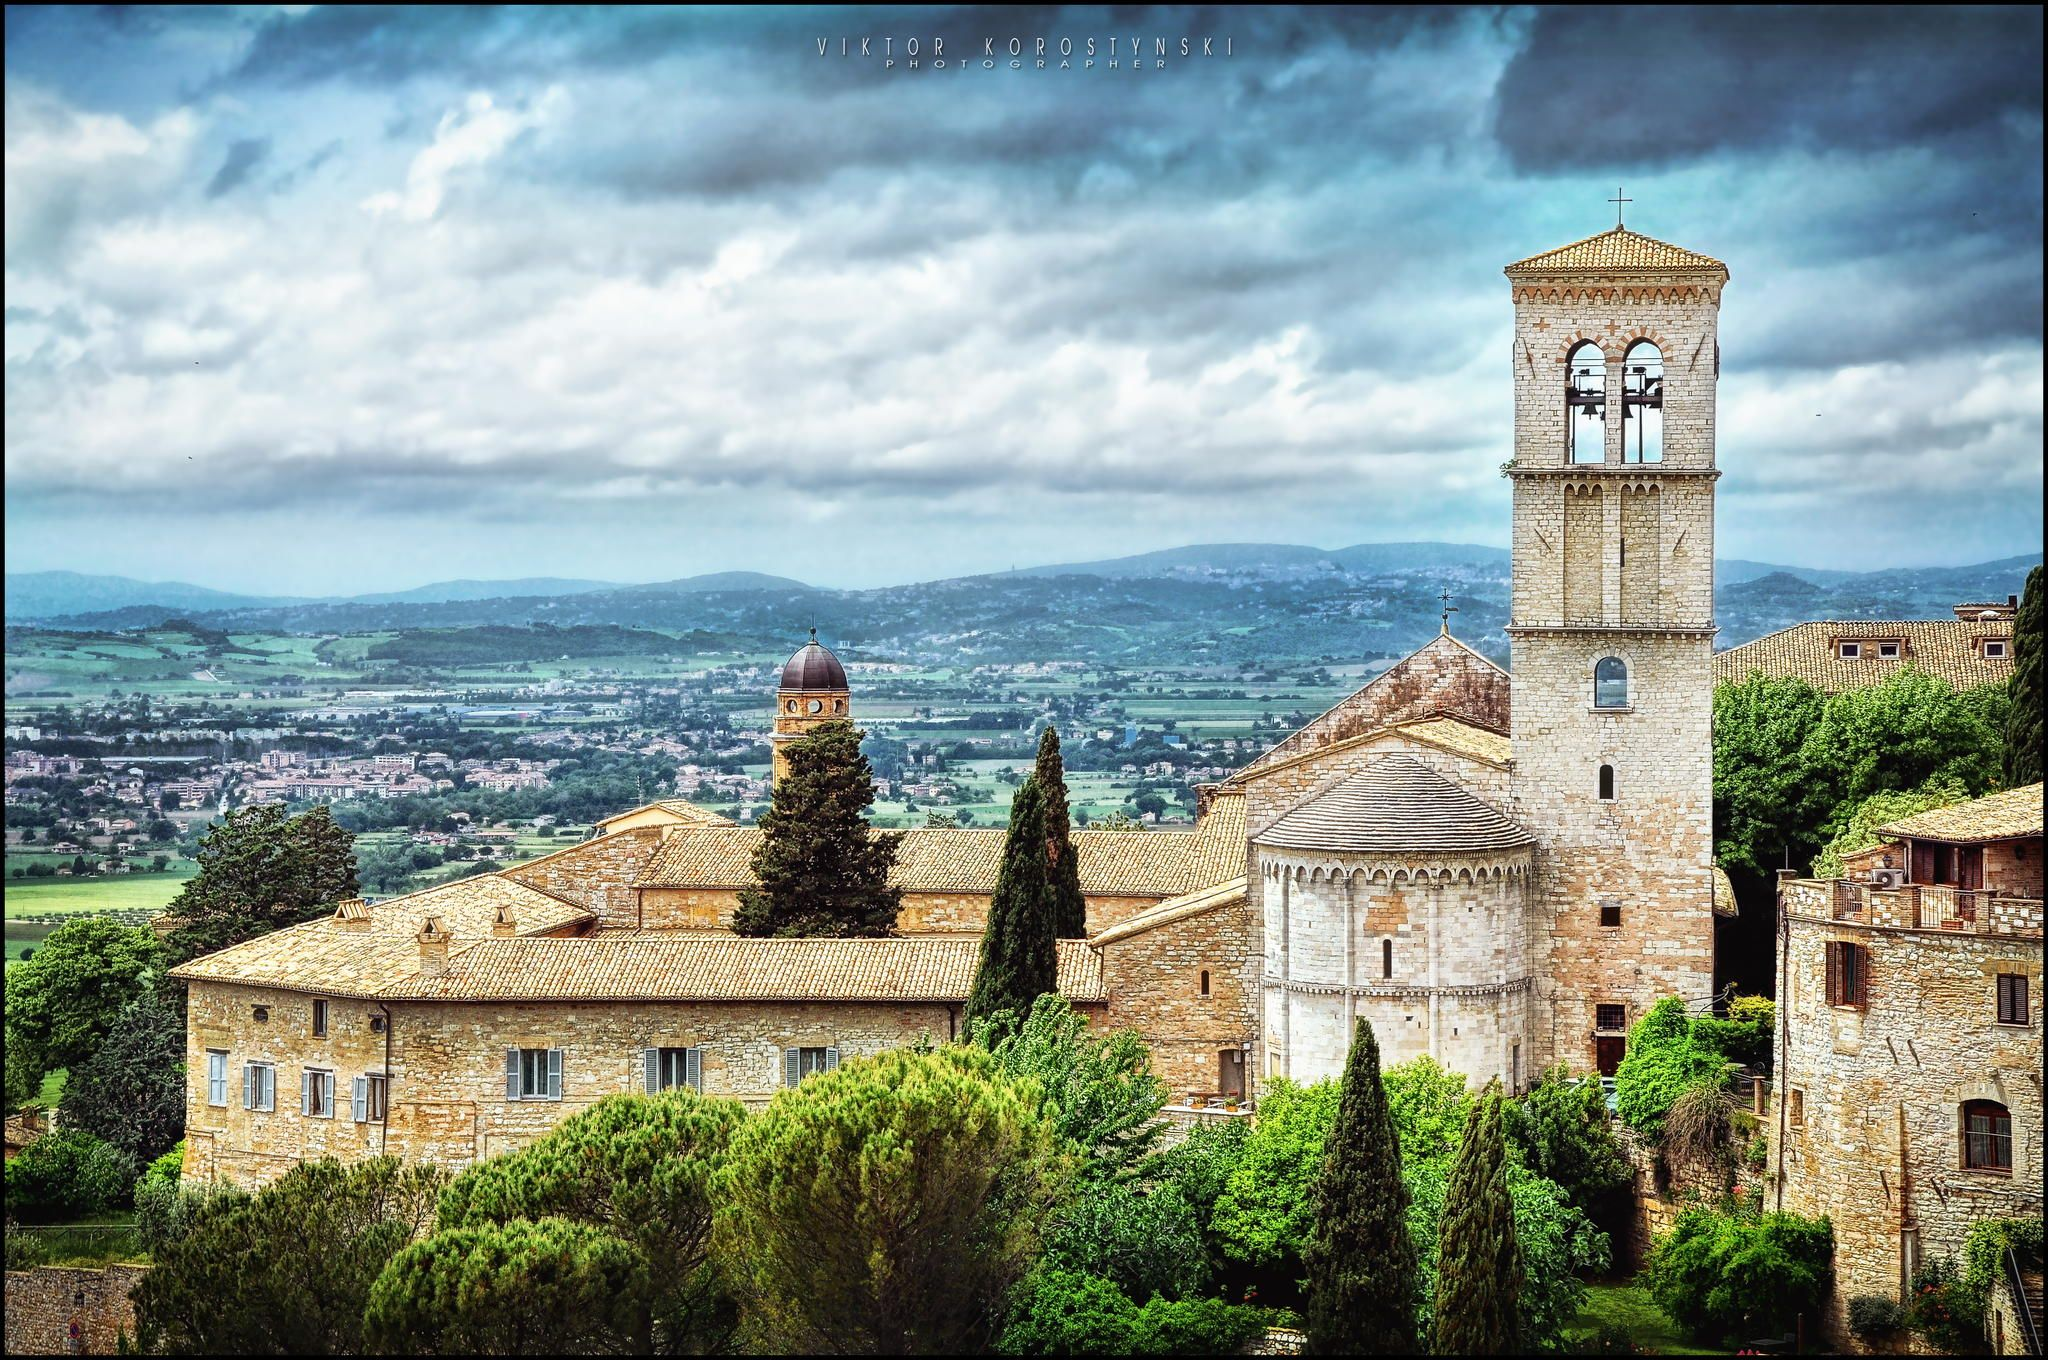 Photograph Assisi. Italy. by Viktor Korostynski on 500px